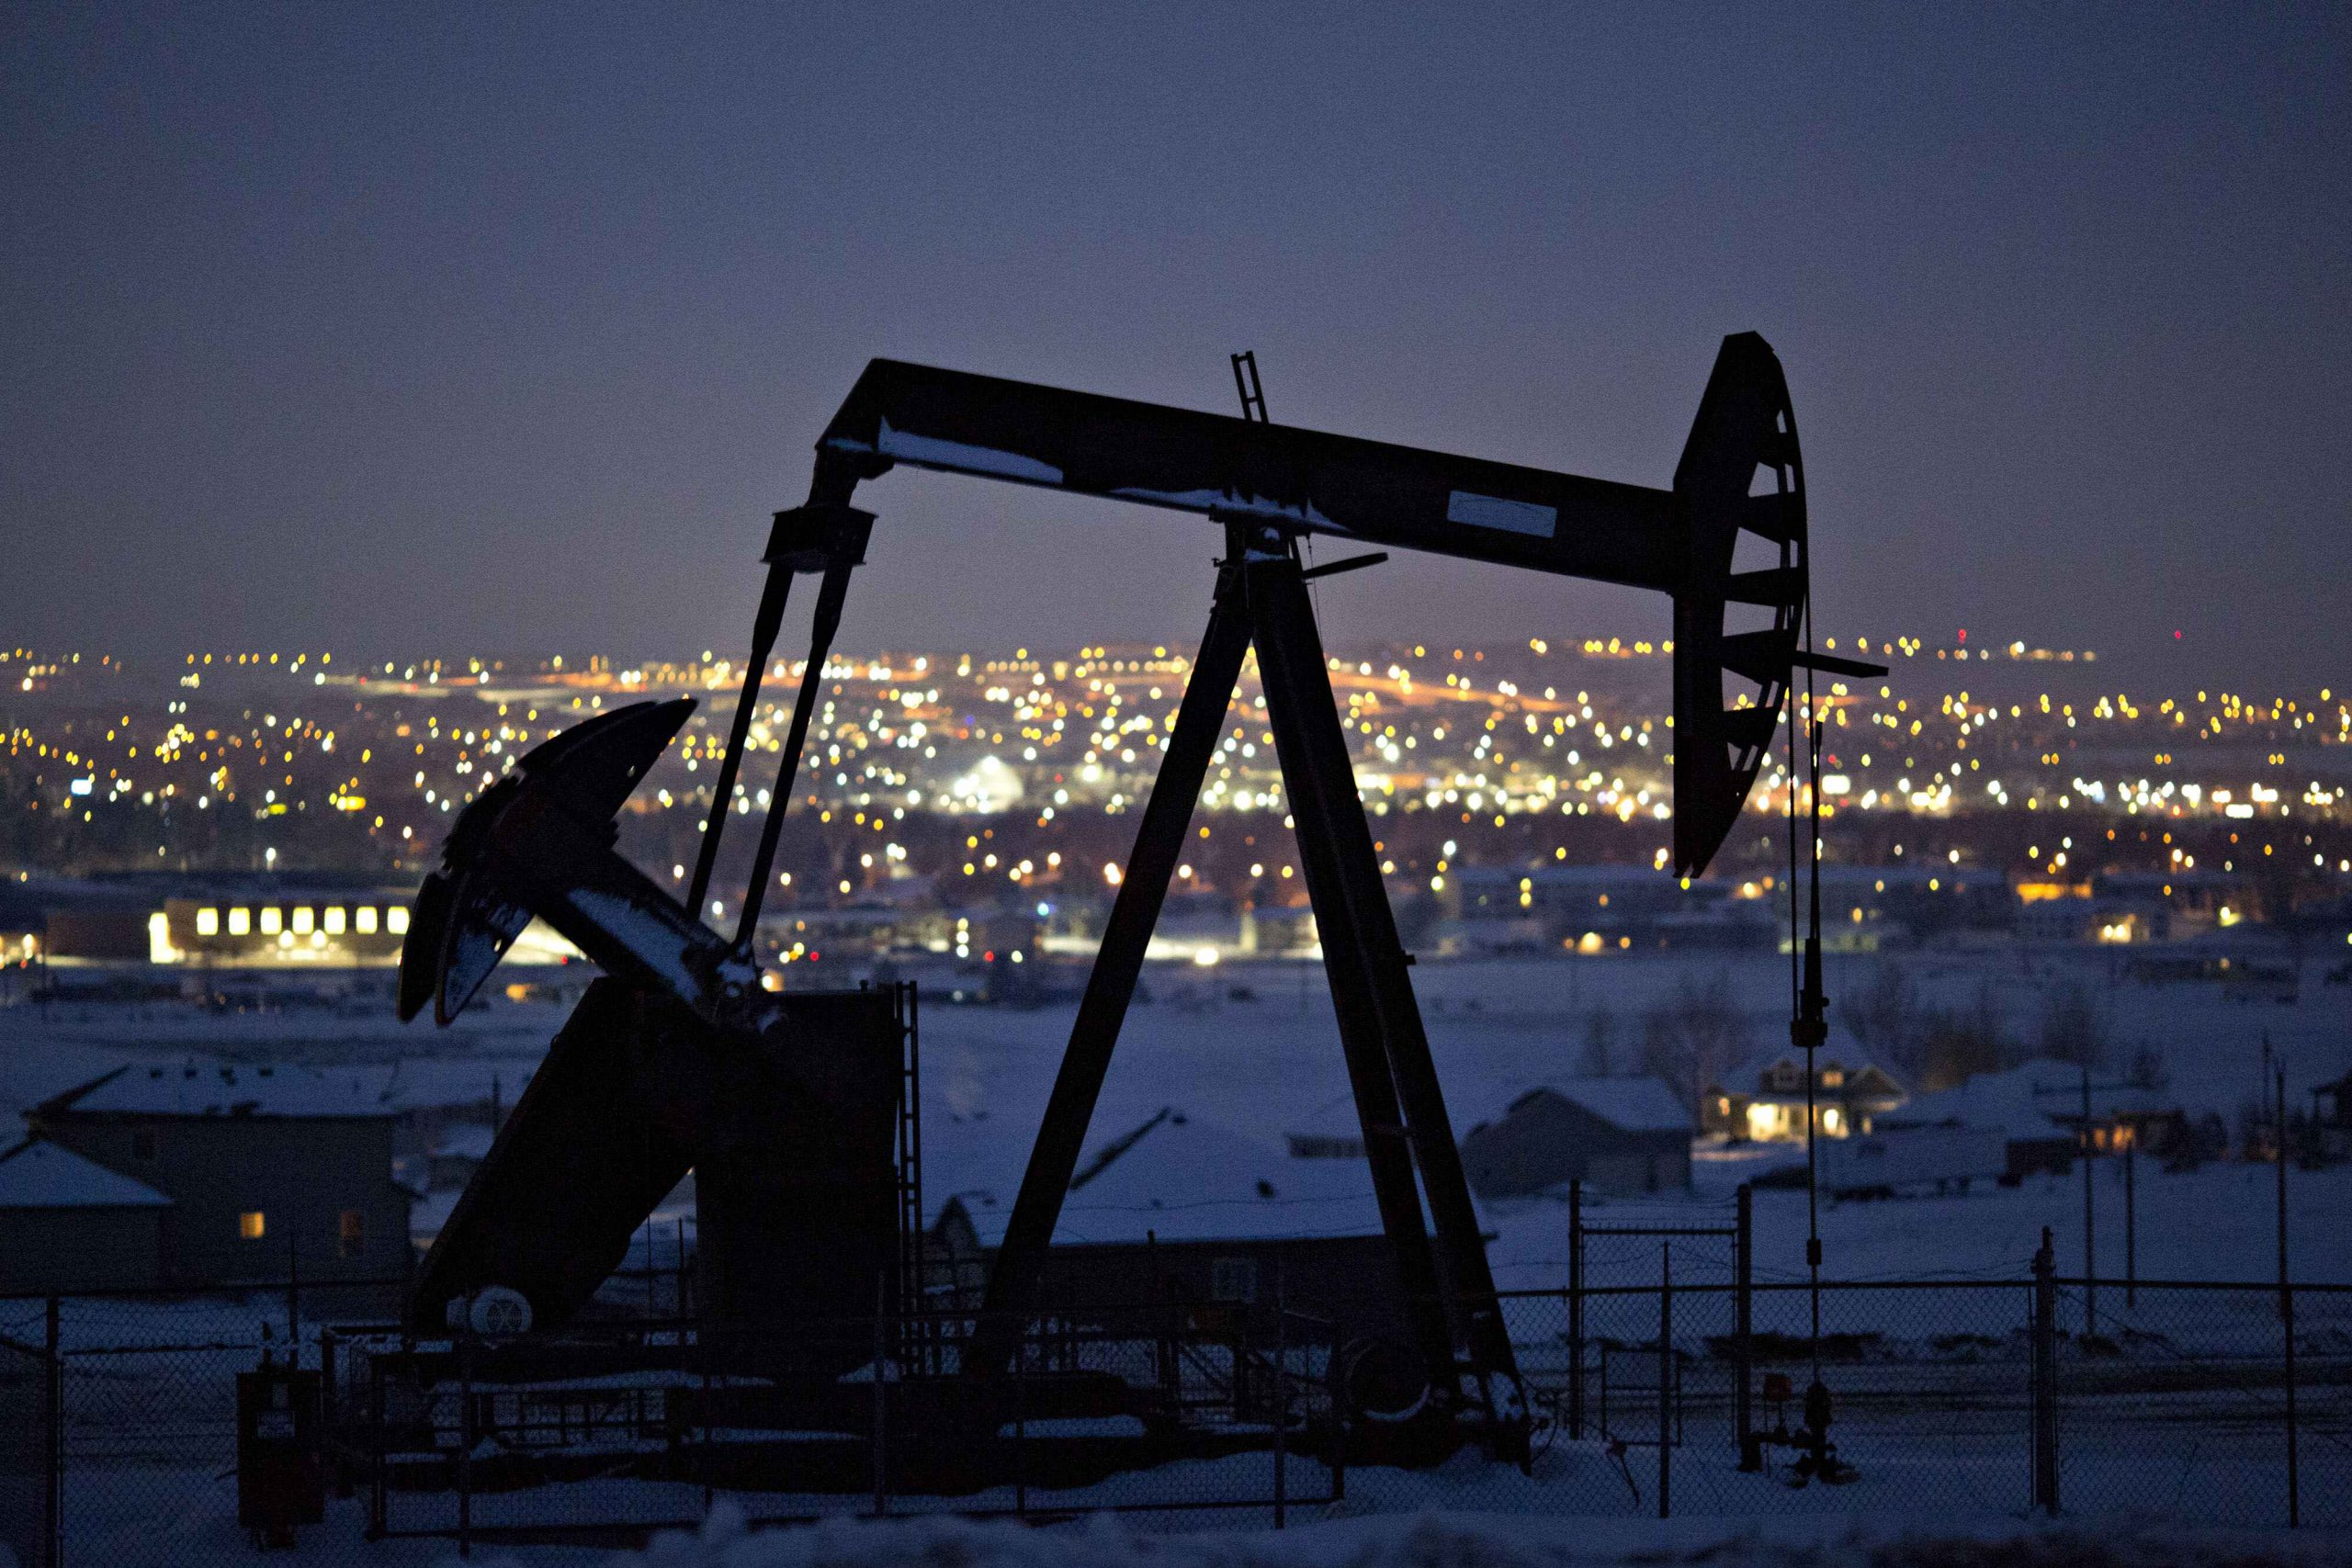 The oil industry has never been in a crisis quite like this and many producers will not survive